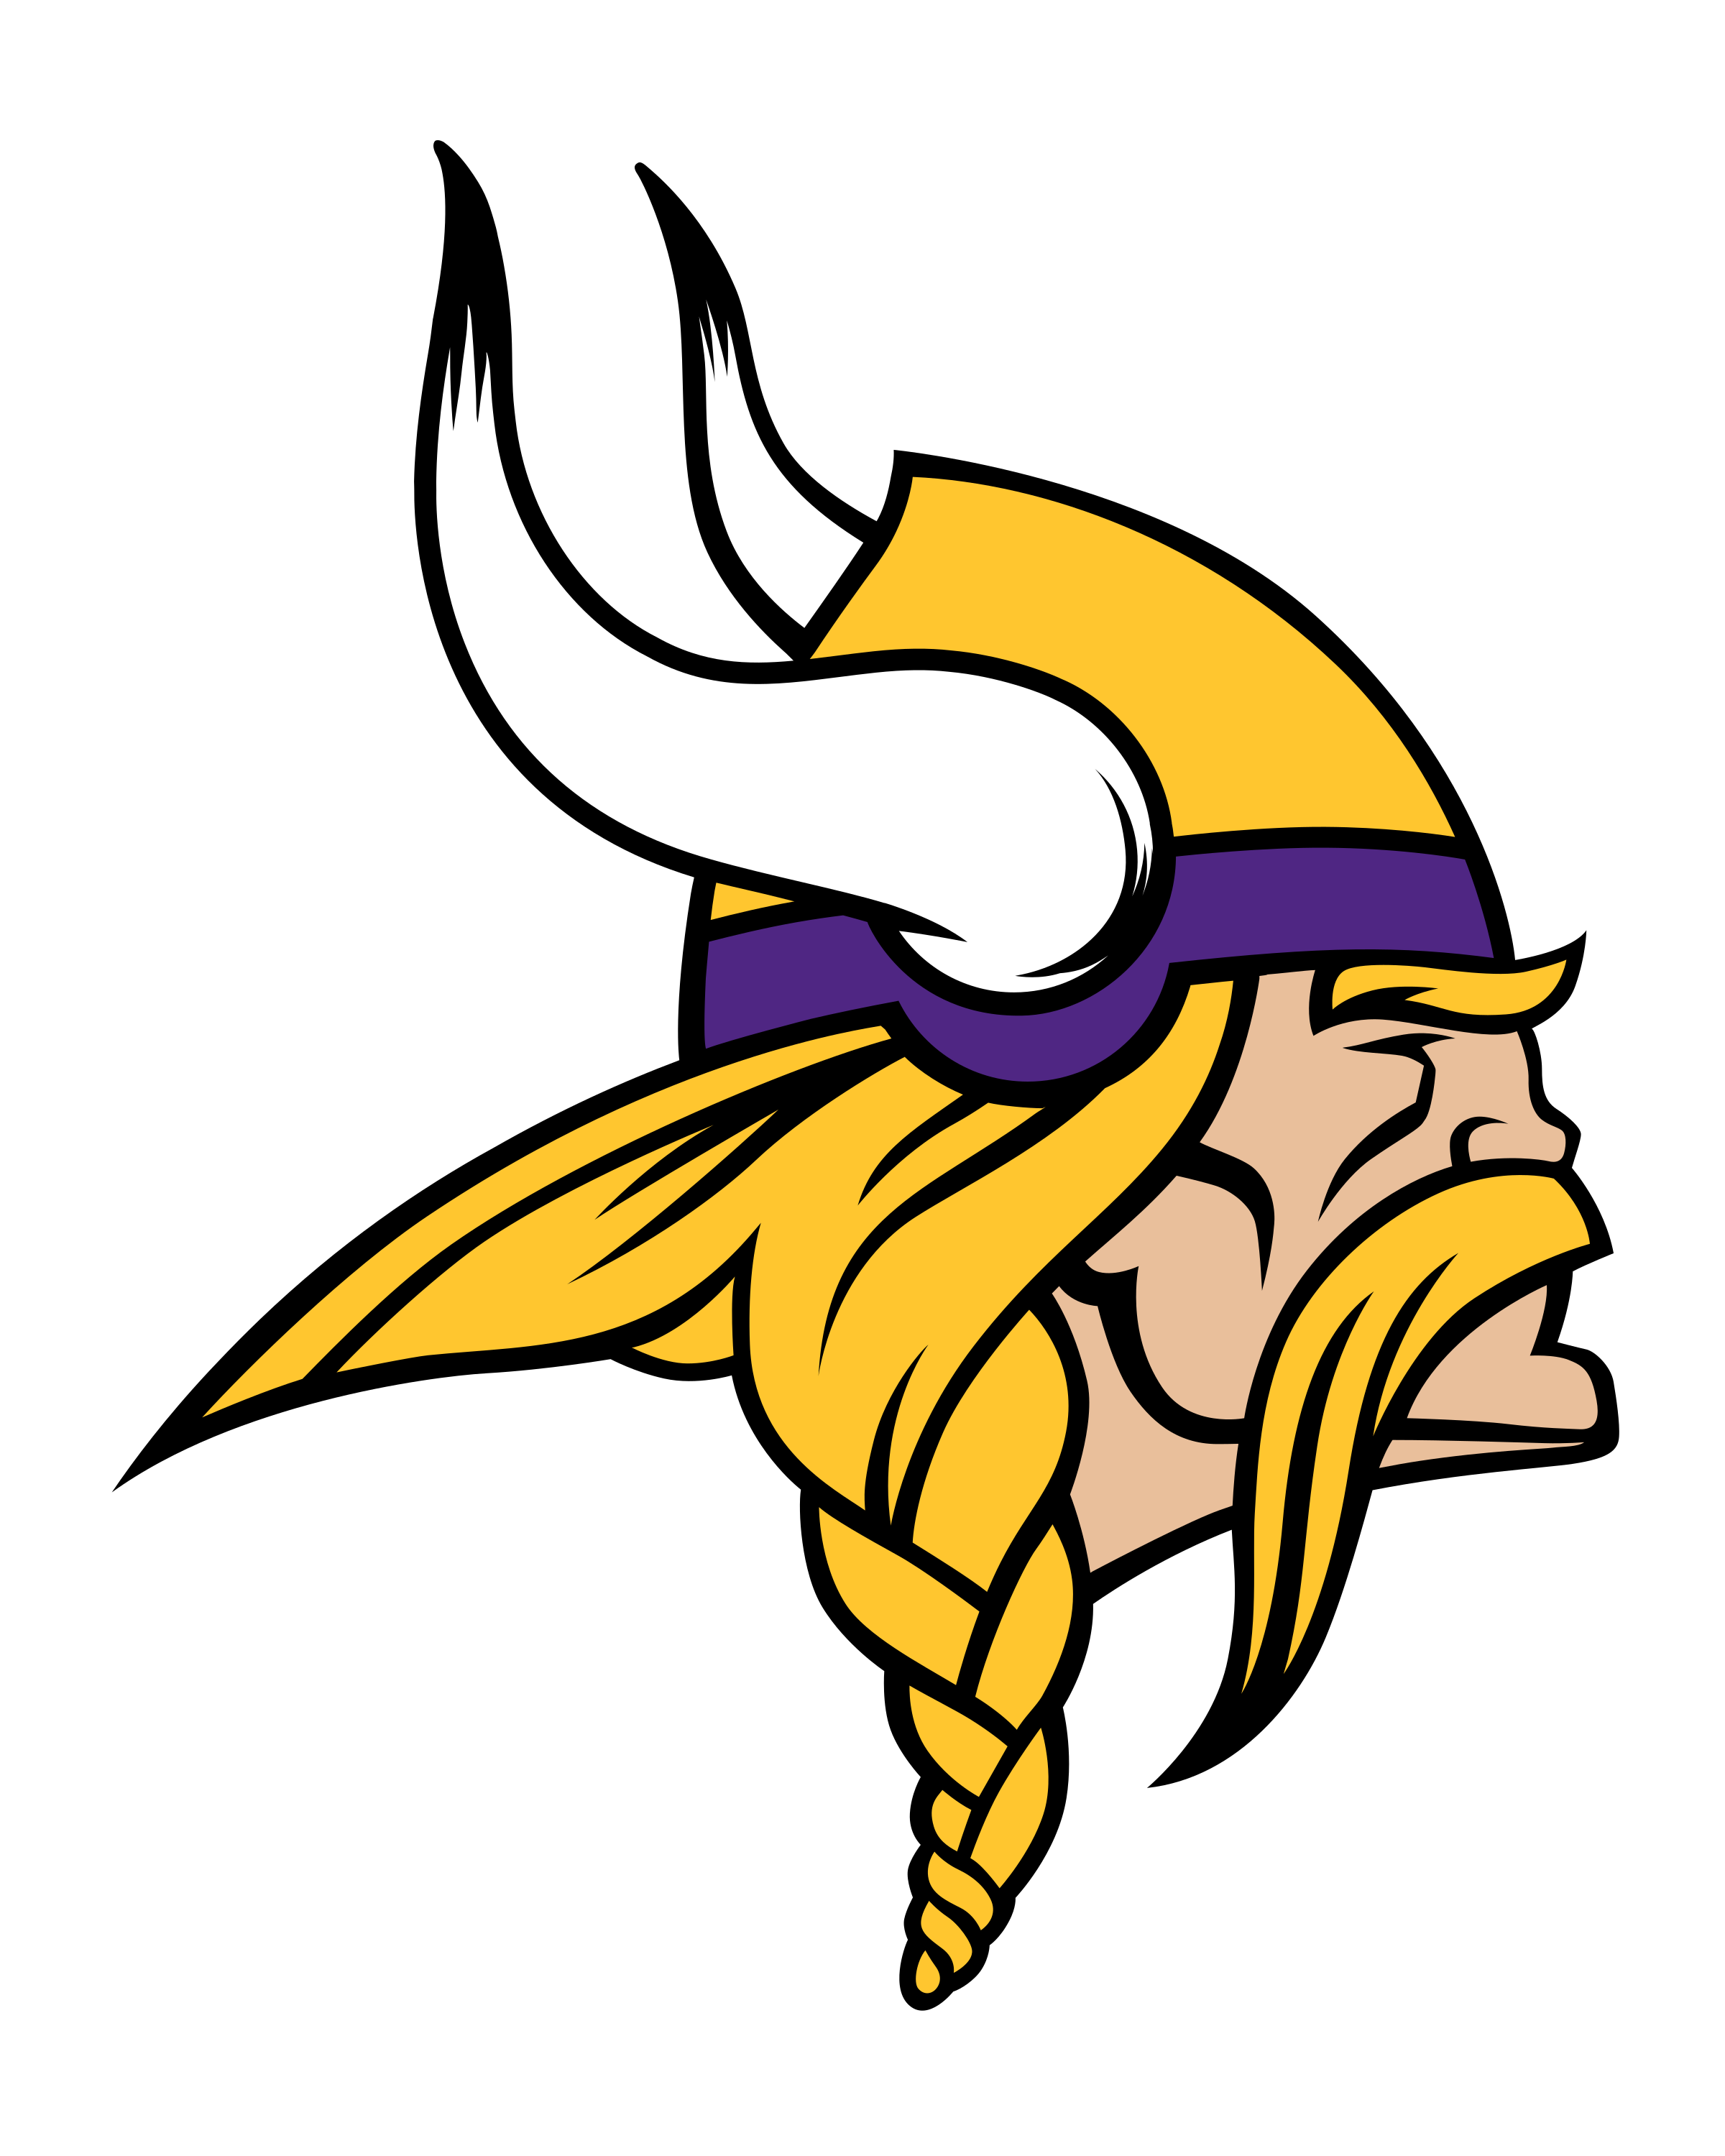 Viking transparent. Minnesota vikings logo png